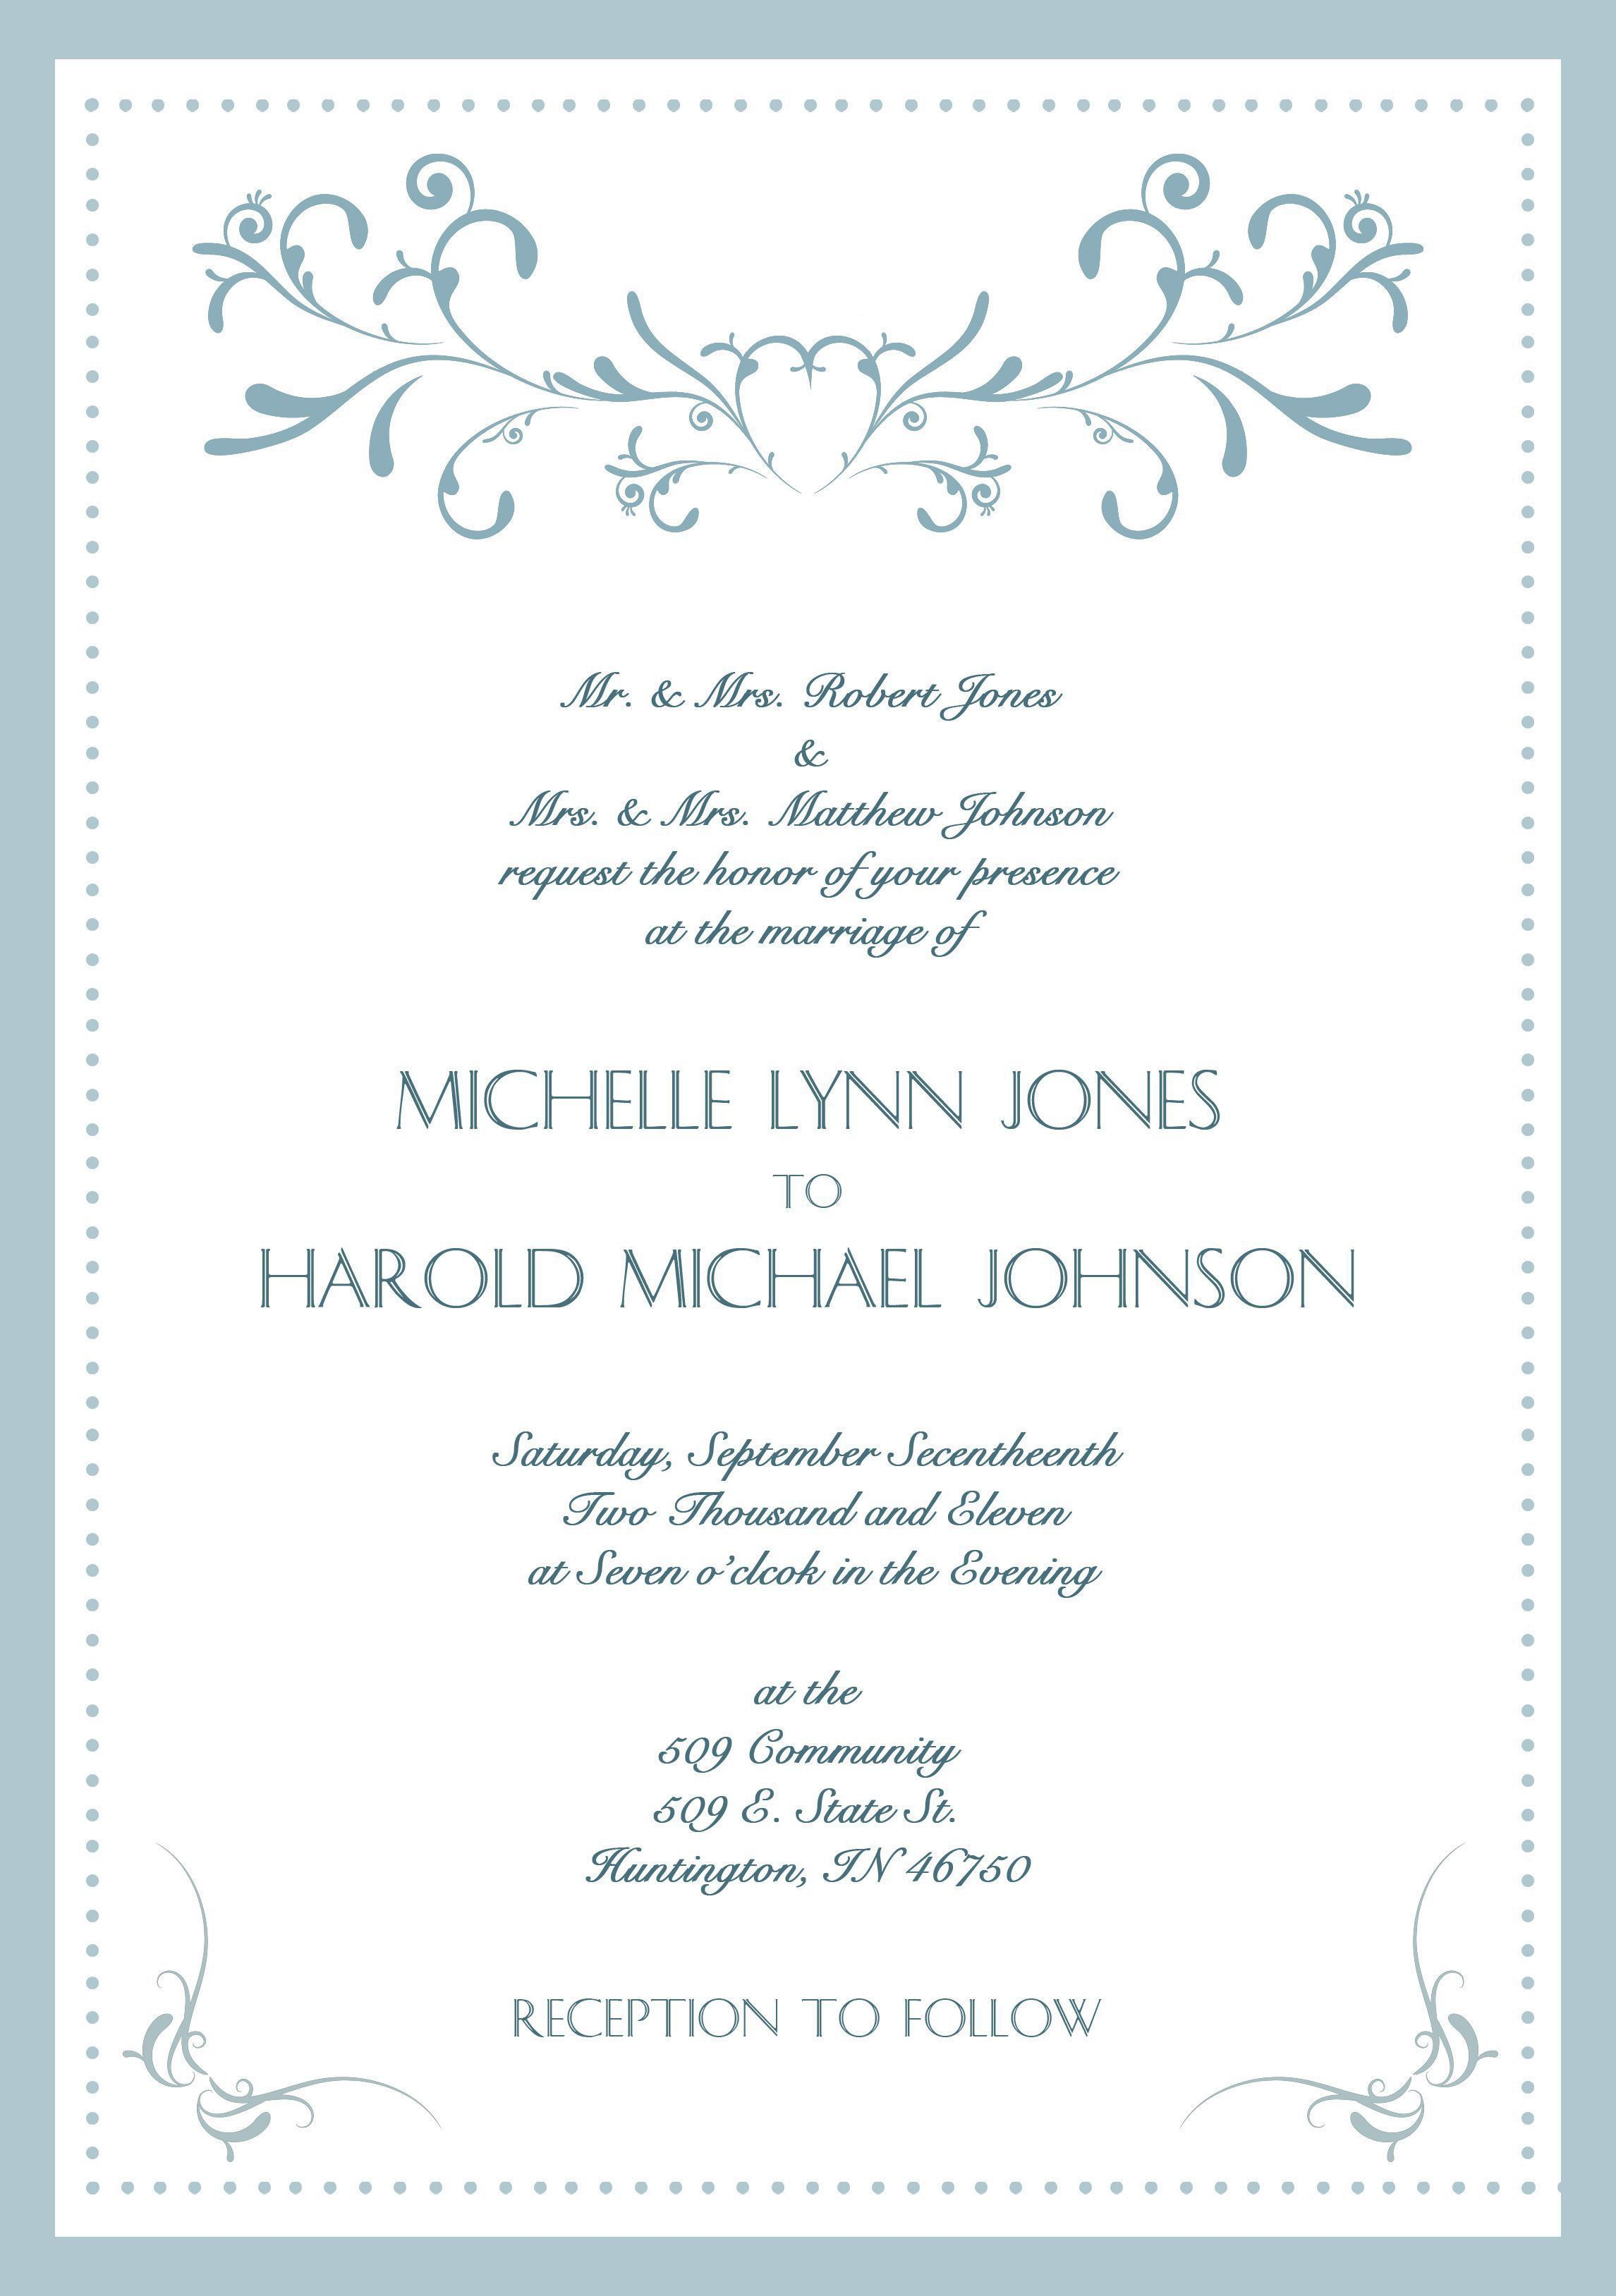 Wedding Invitation In English Wordings: Sample-wedding-invitation-cards-in-english